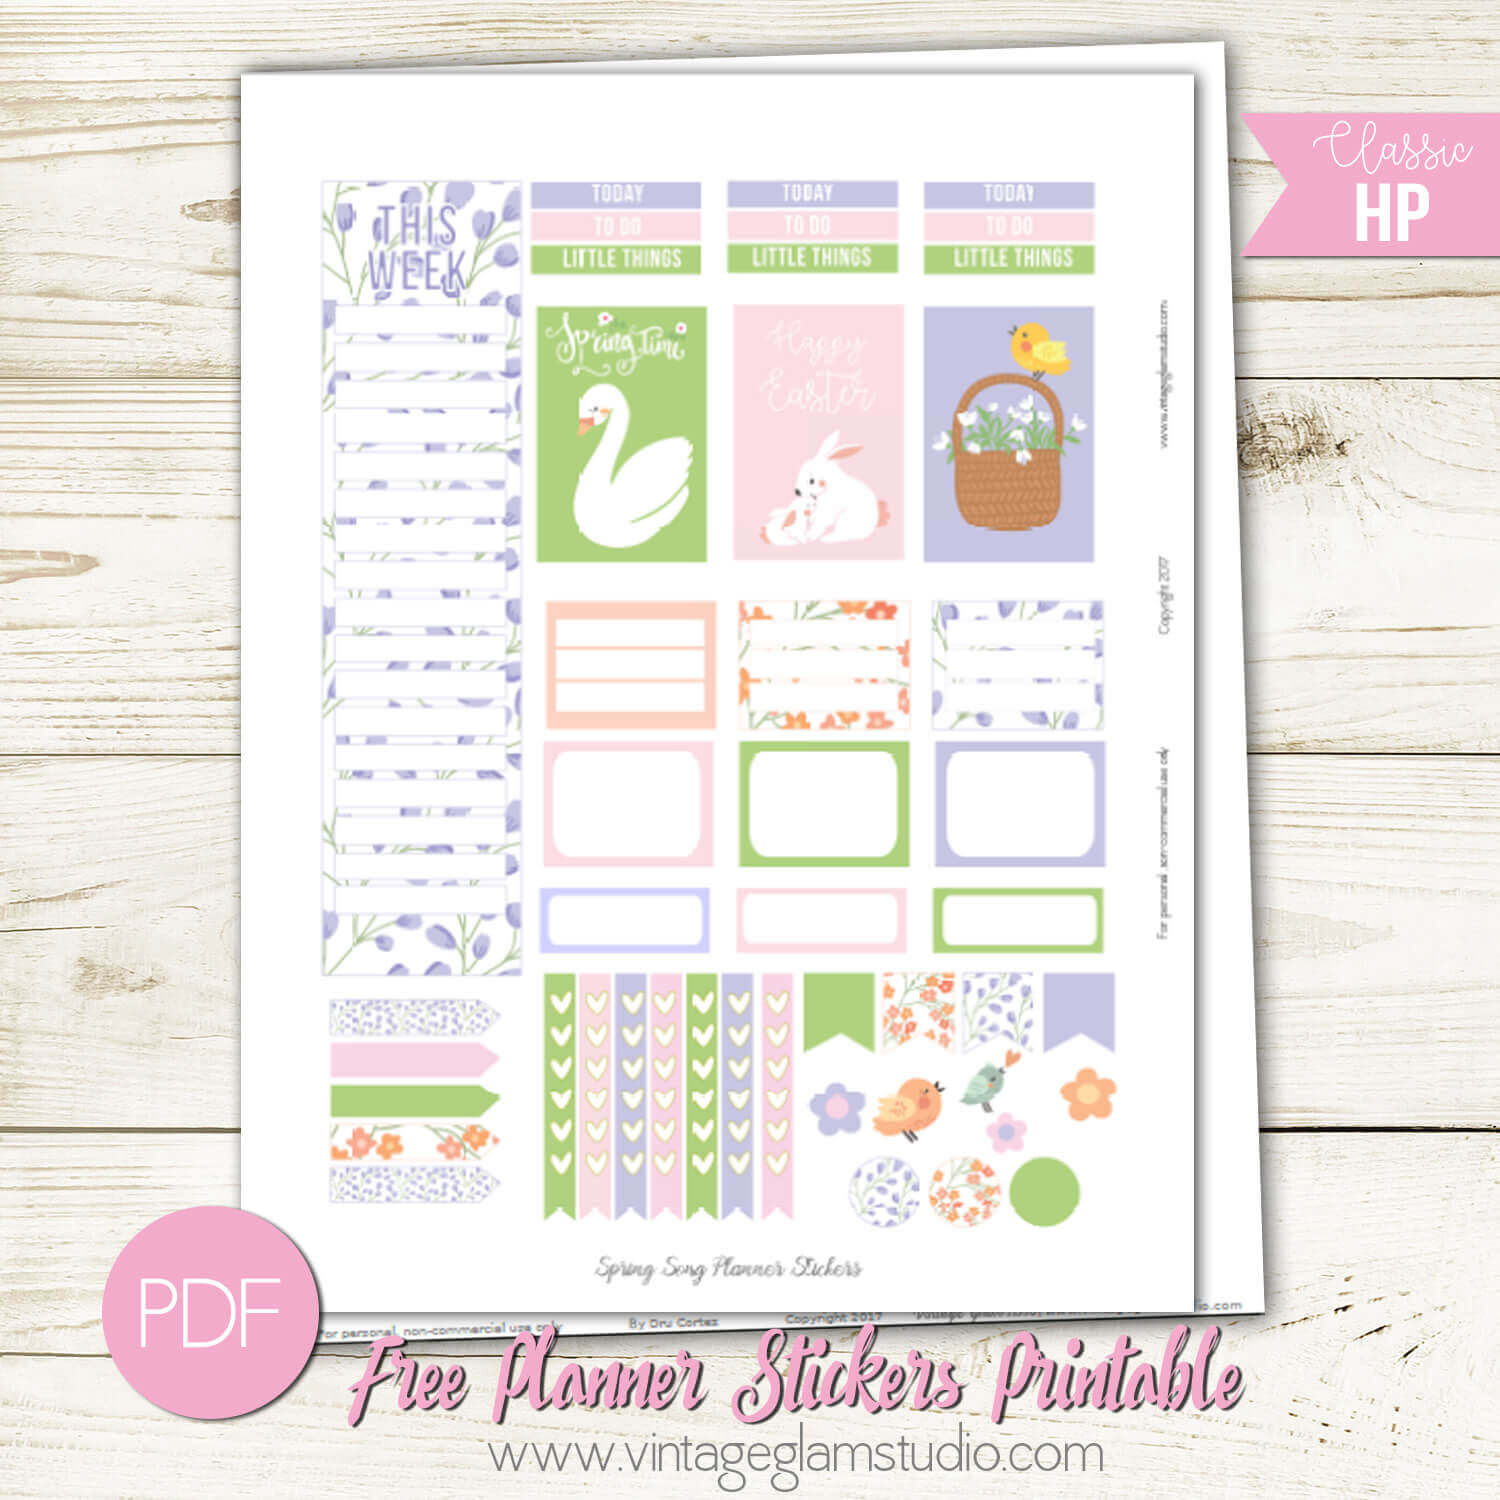 Spring Song Planner Stickers Free Printable